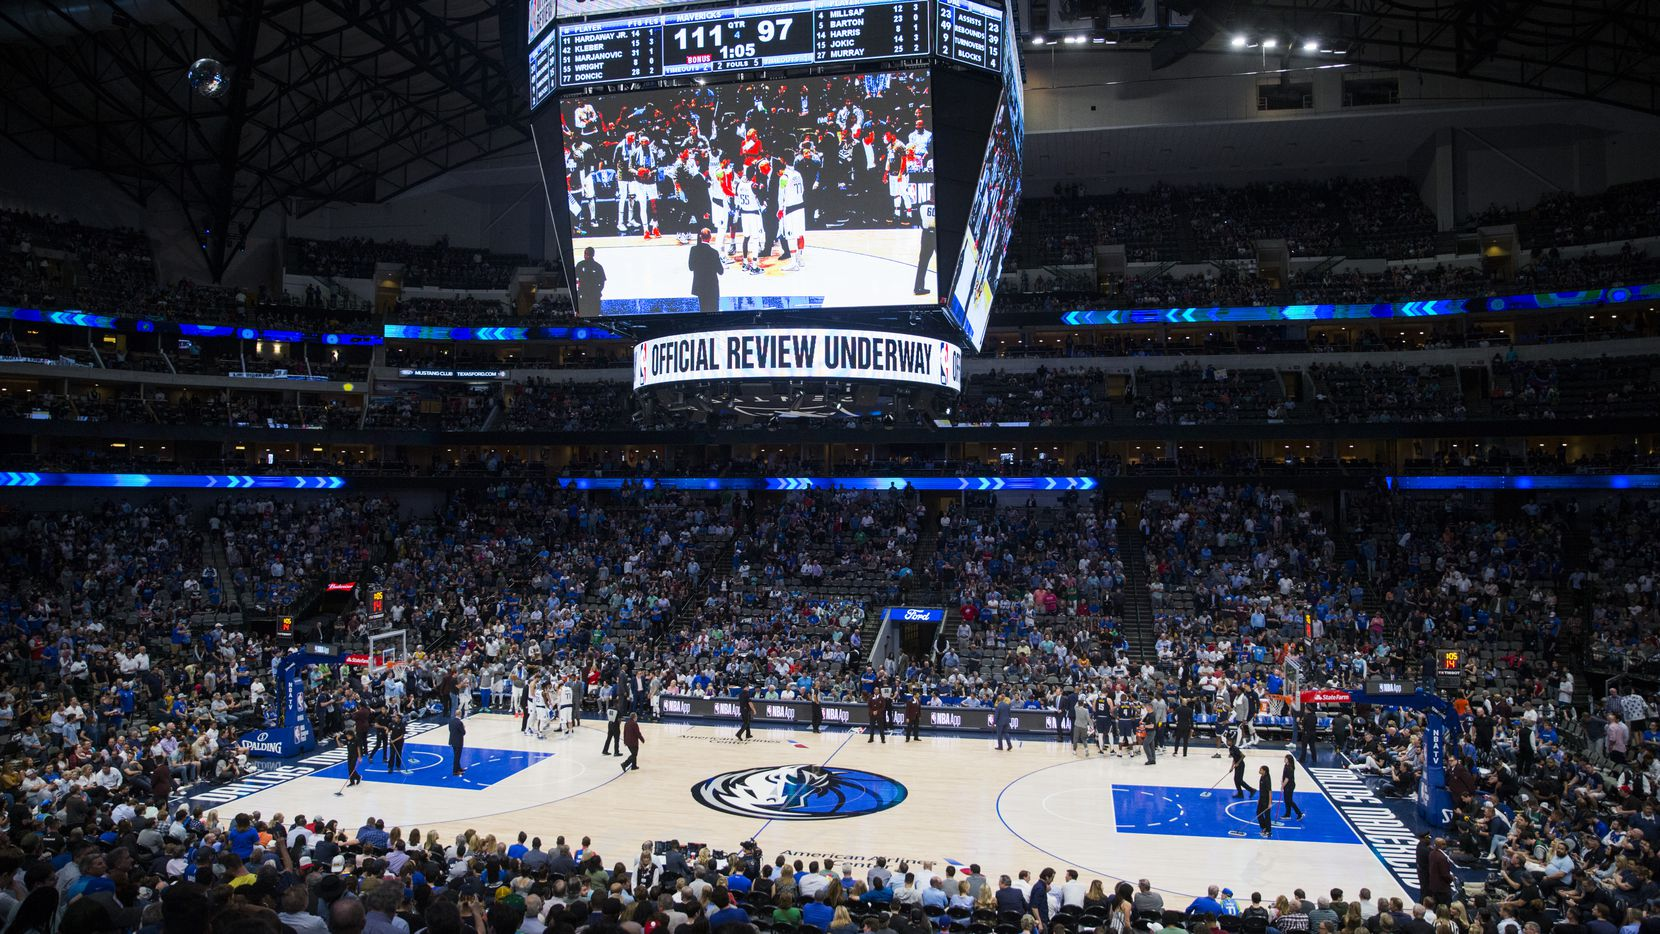 A mostly full arena in the fourth quarter of an NBA game between the Dallas Mavericks and the Denver Nuggets on Wednesday, March 11, 2020 at American Airlines Center in Dallas. During the game, the NBA suspended all games due to the spread of the new coronavirus.